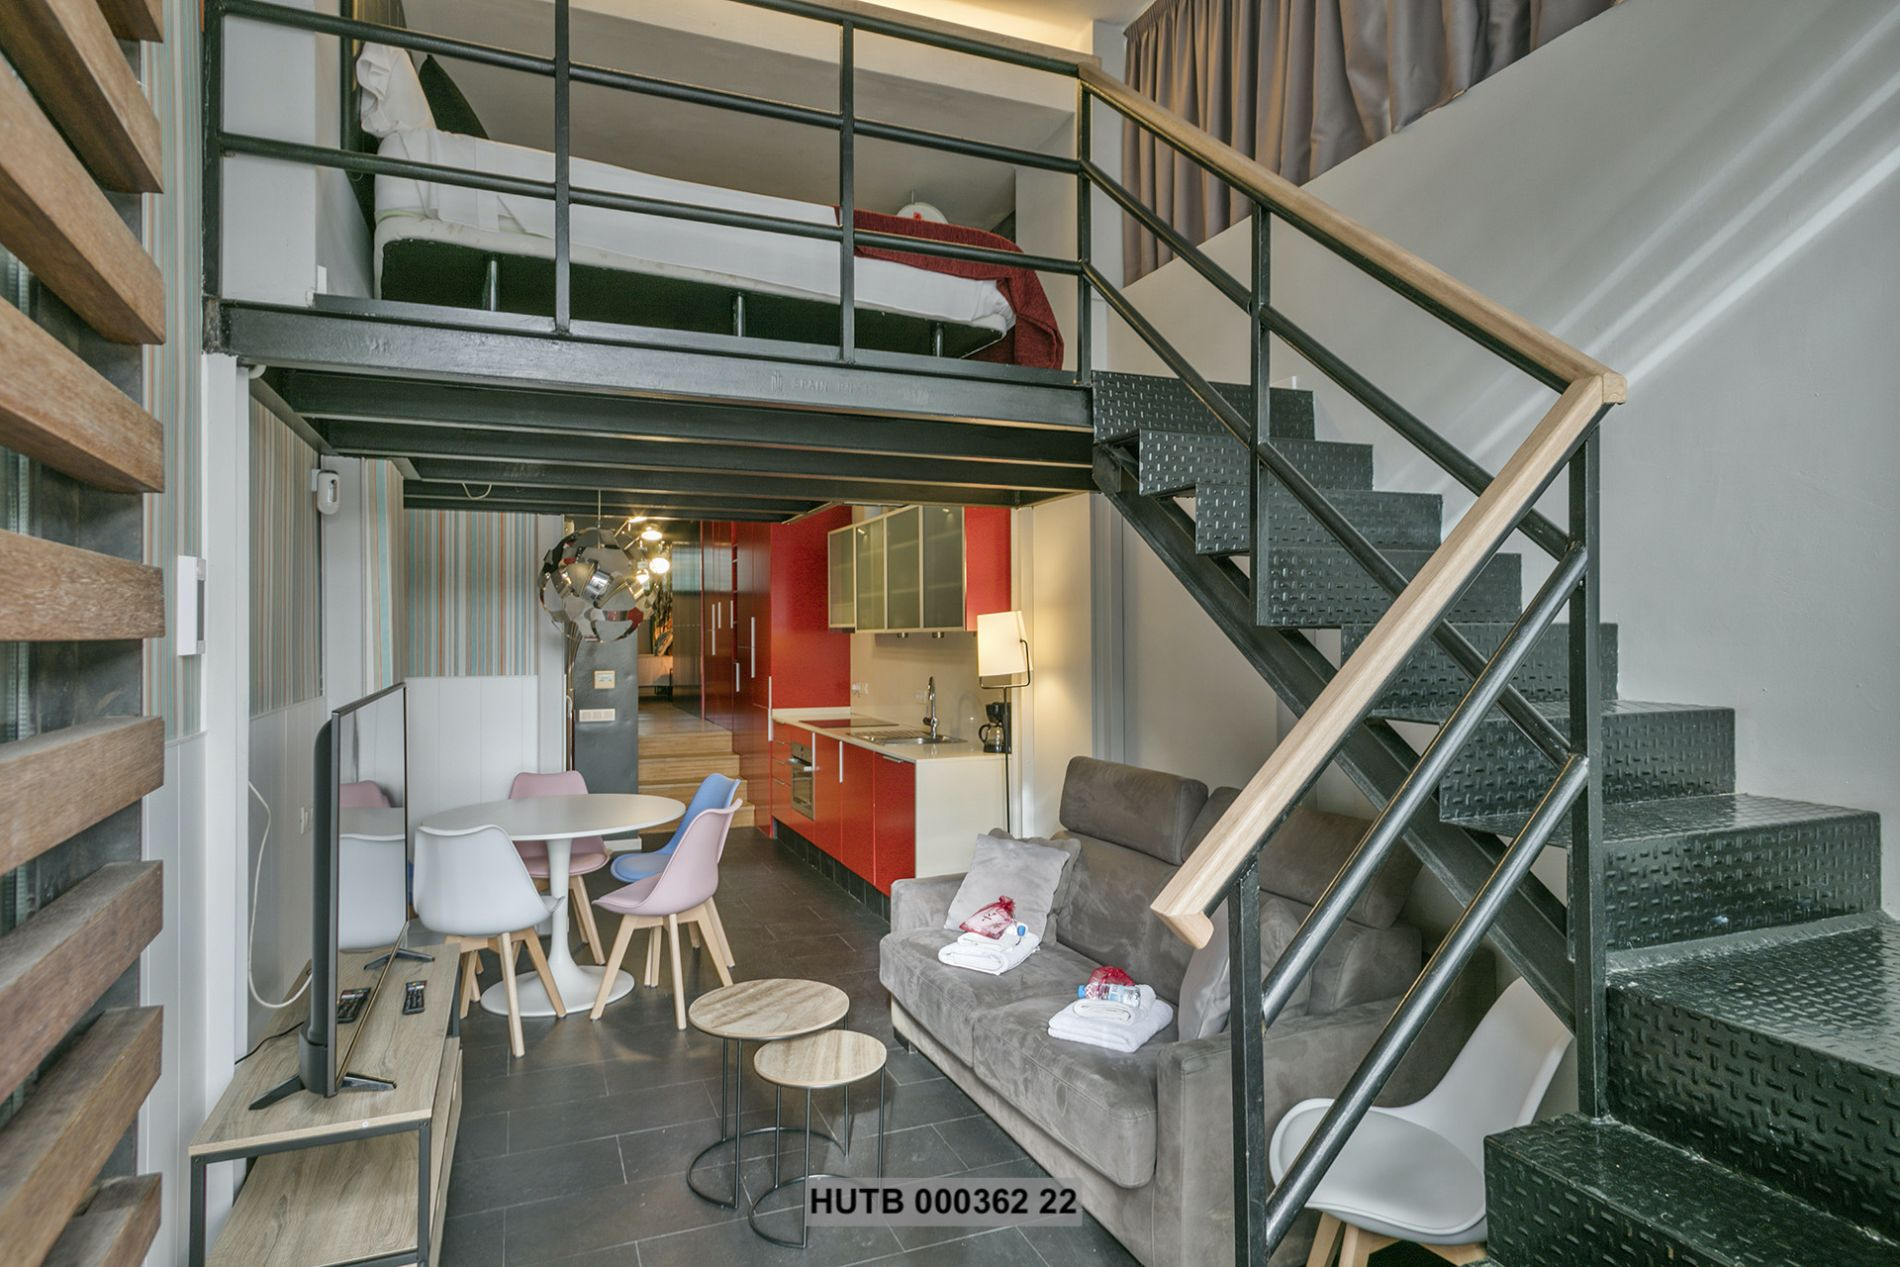 Serviced apartment that allows pets next to FC Field Barcelona